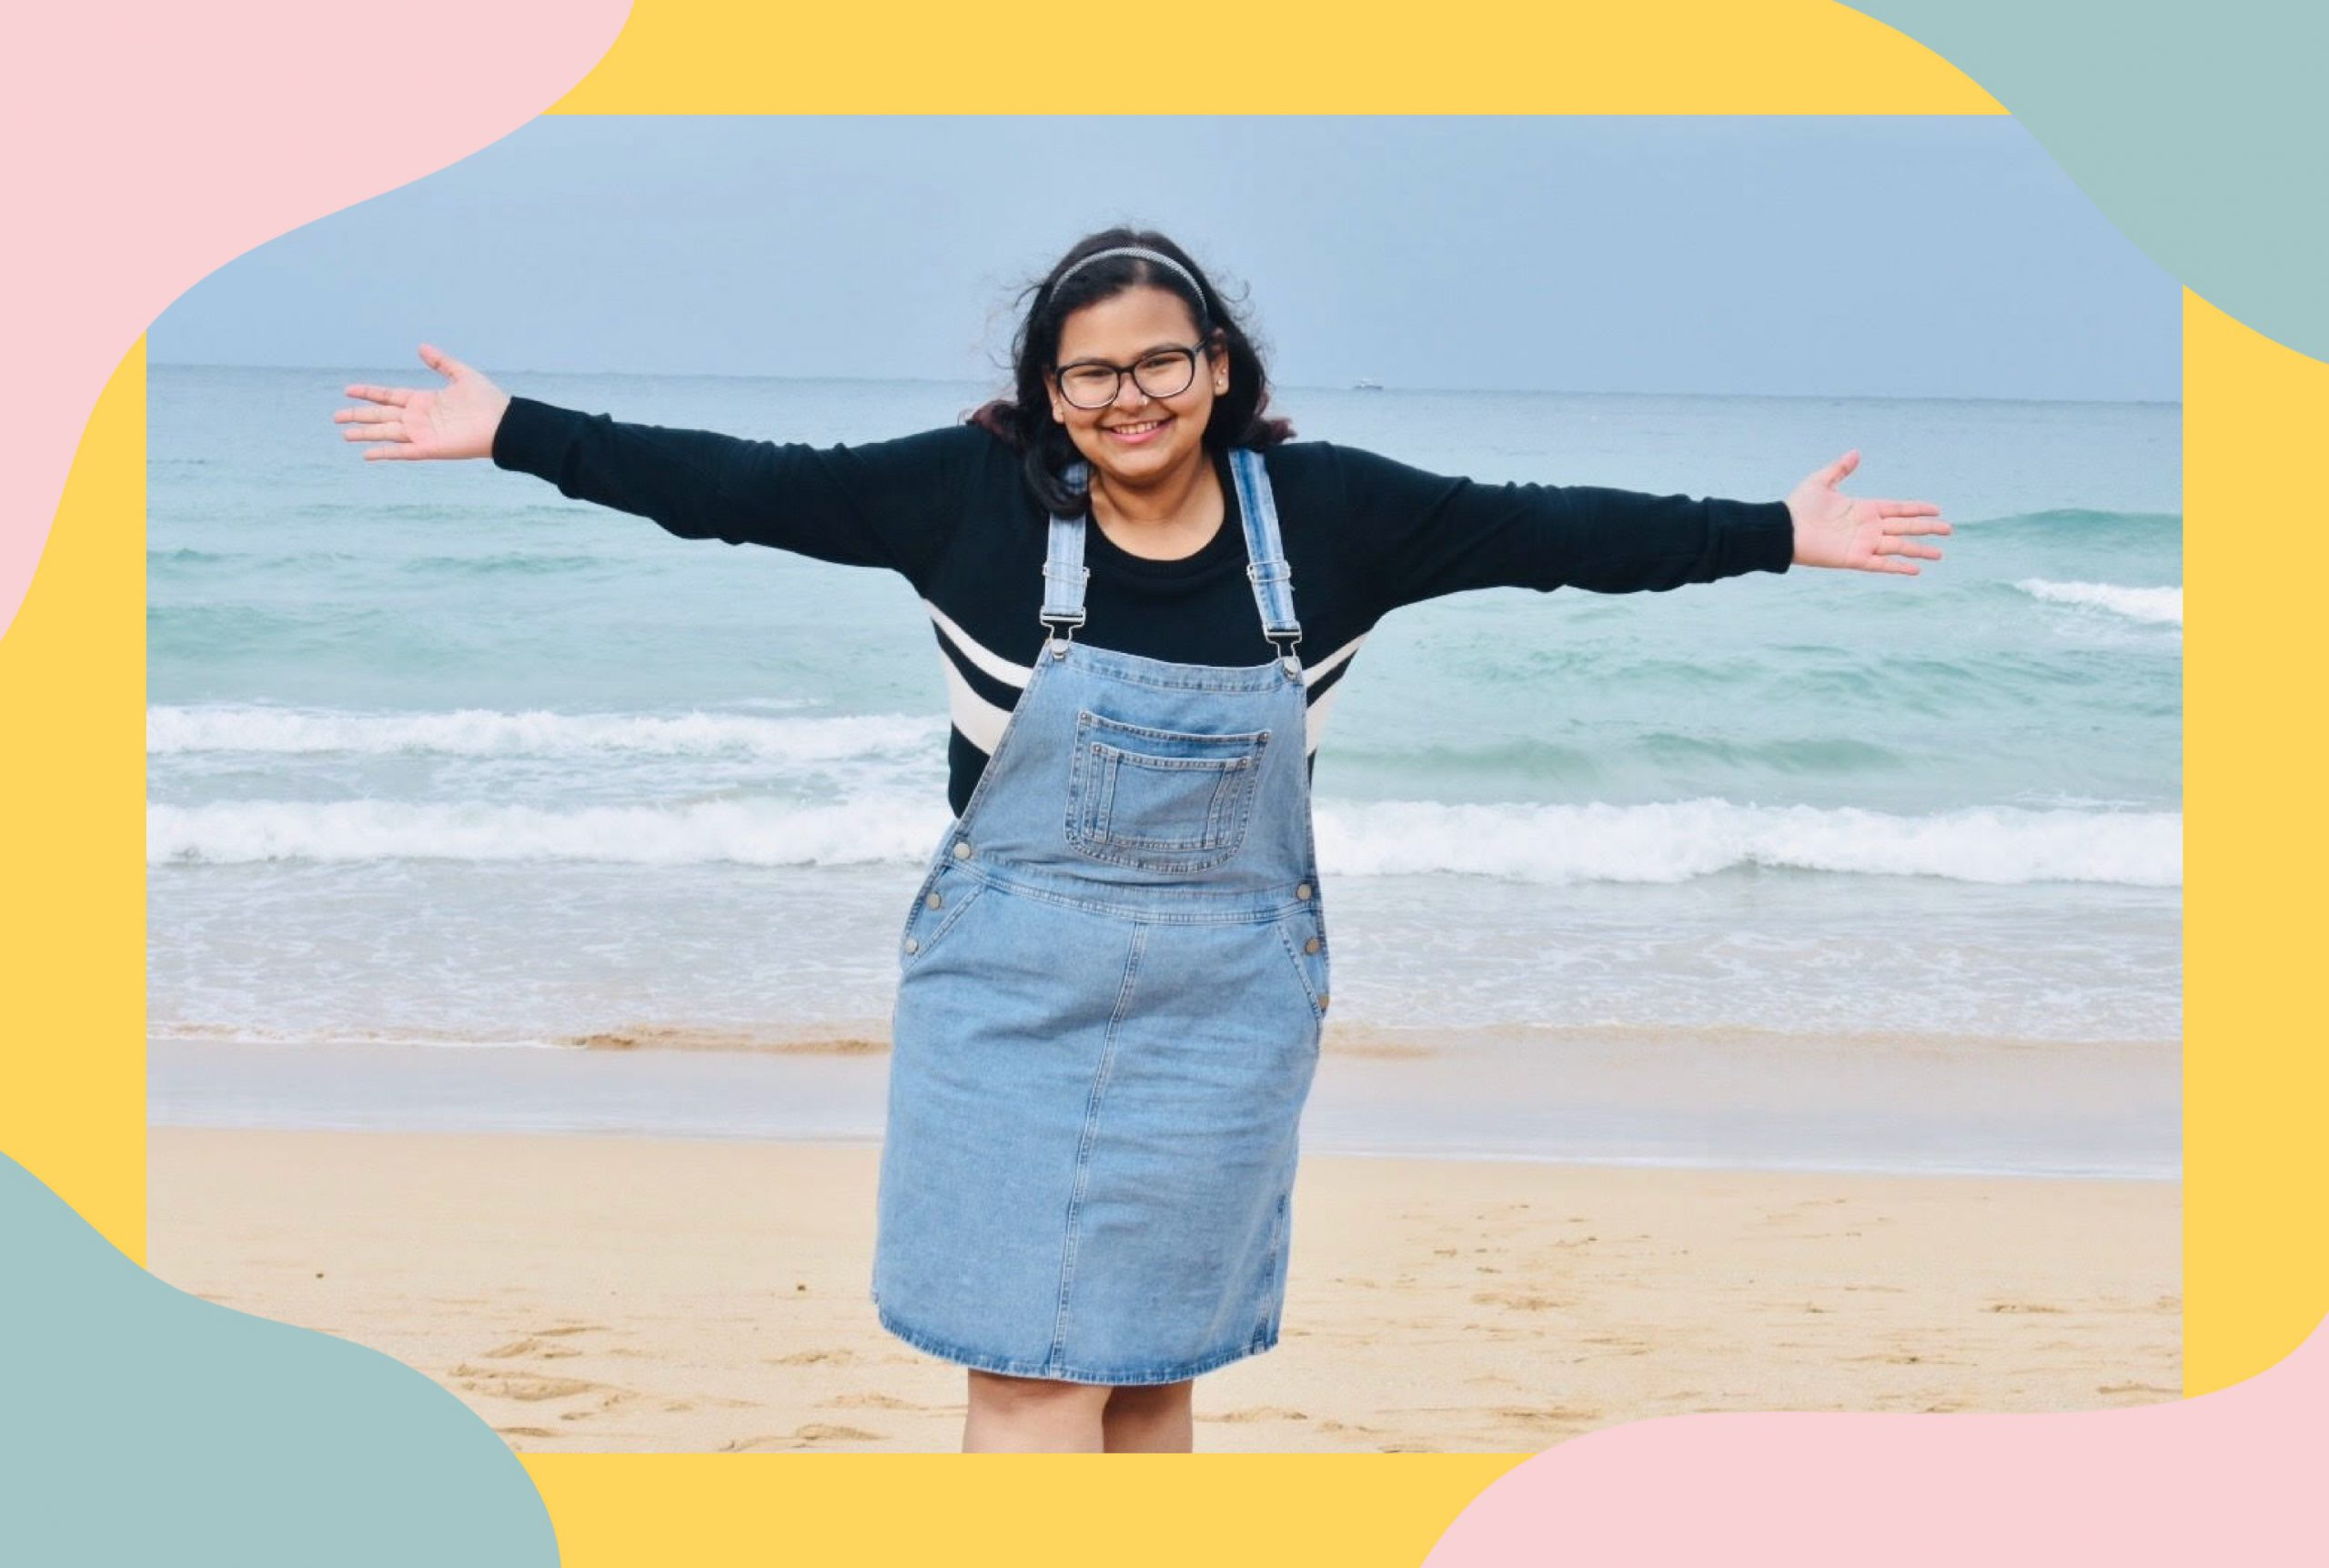 An image of Soumya Mishra wearing blue overalls and a dark full sleeve sweater.